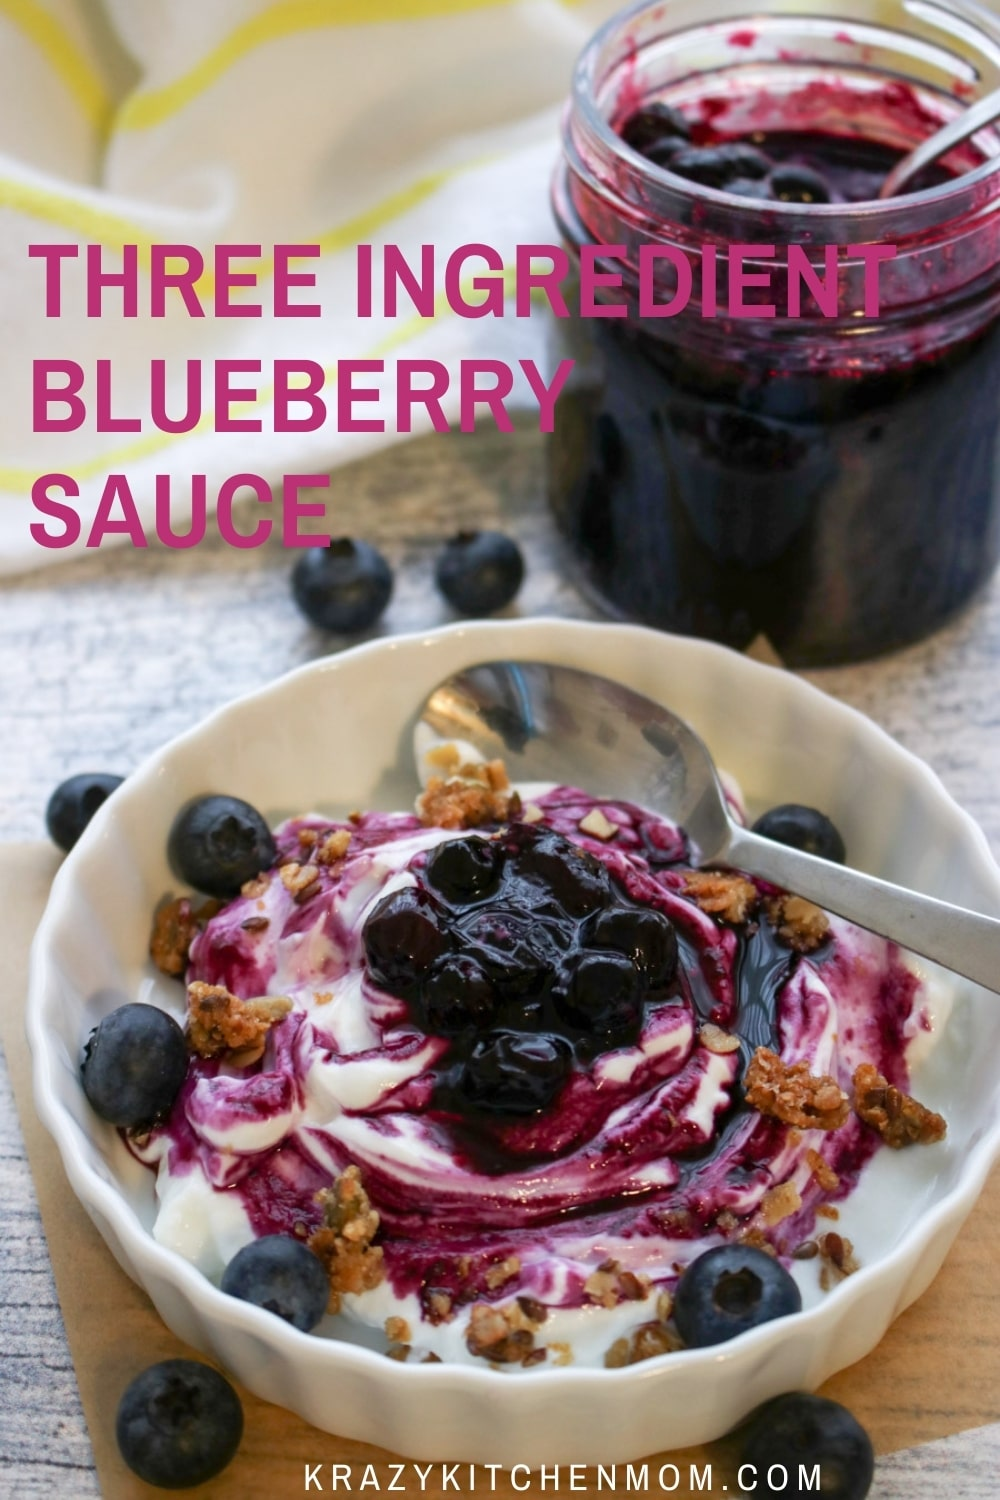 Sweet, juicy, tangy blueberries cooked down to make your new favorite sauce. Pour it over pancakes, waffles, yogurt, or ice cream.  via @krazykitchenmom